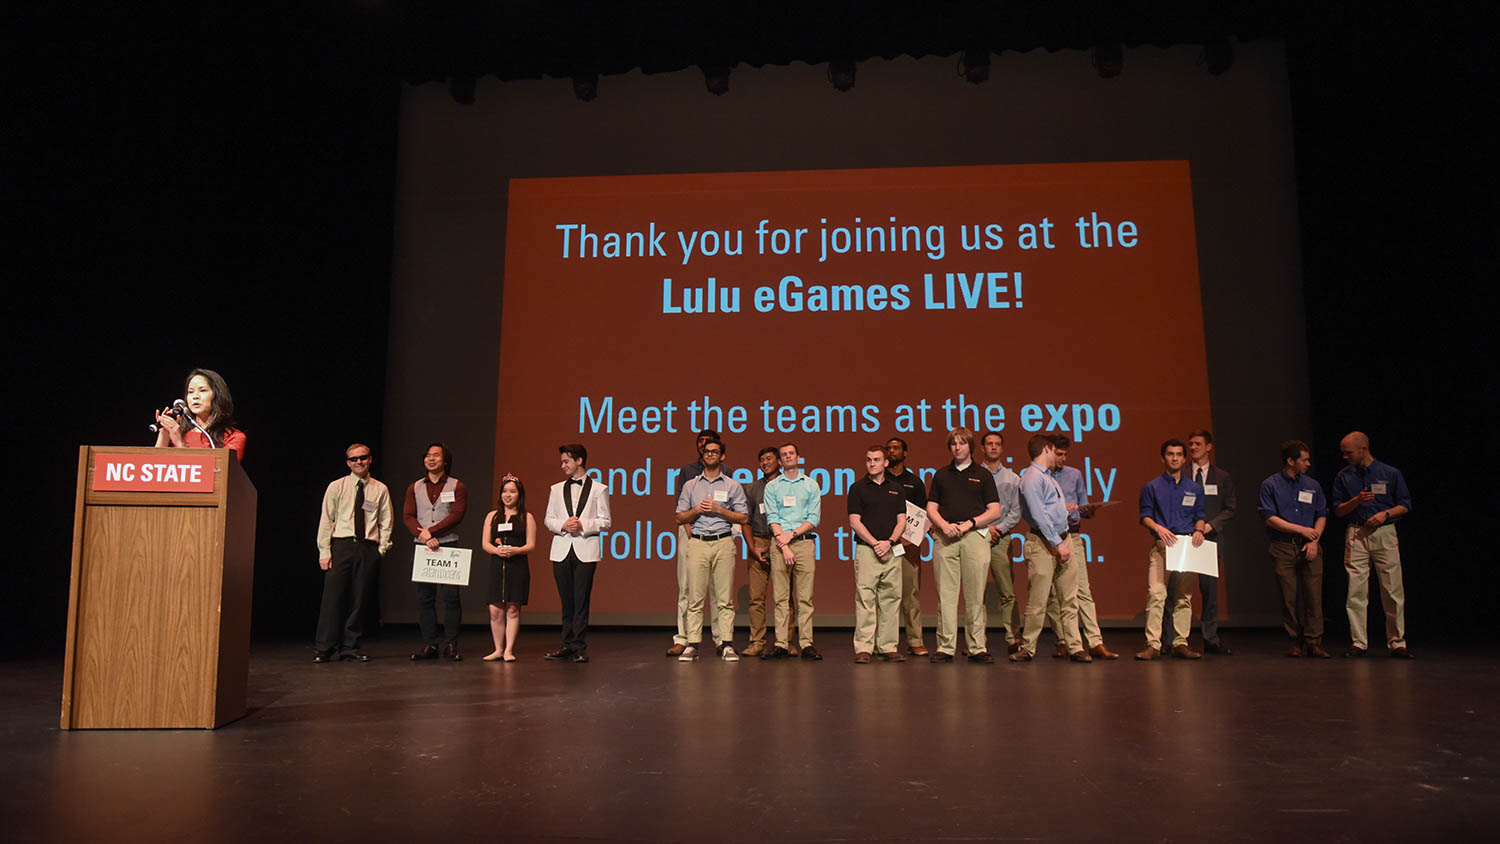 NC State 2019 Lulu eGames: Participate in this exciting startup competition